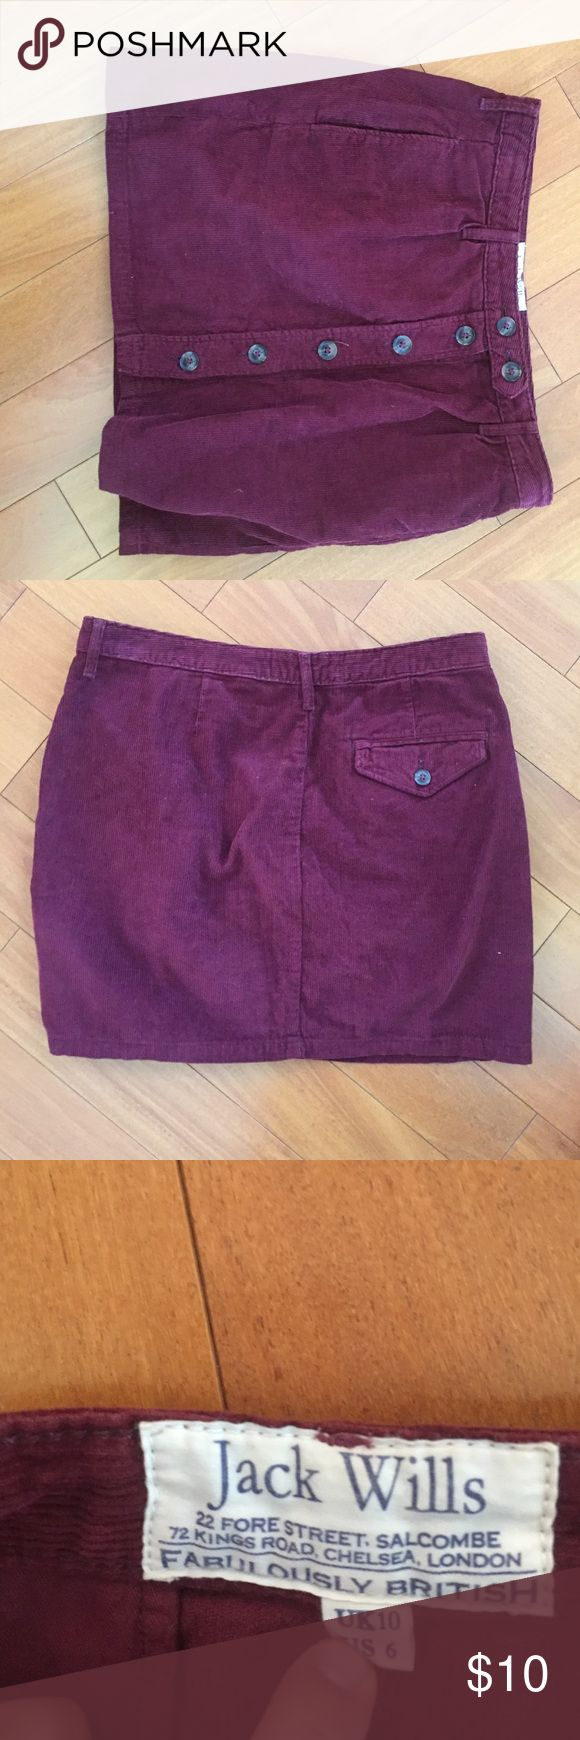 Jack Wills maroon corduroy skirt with buttons gently worn, maroon corduroy Jack Wills Skirts Mini